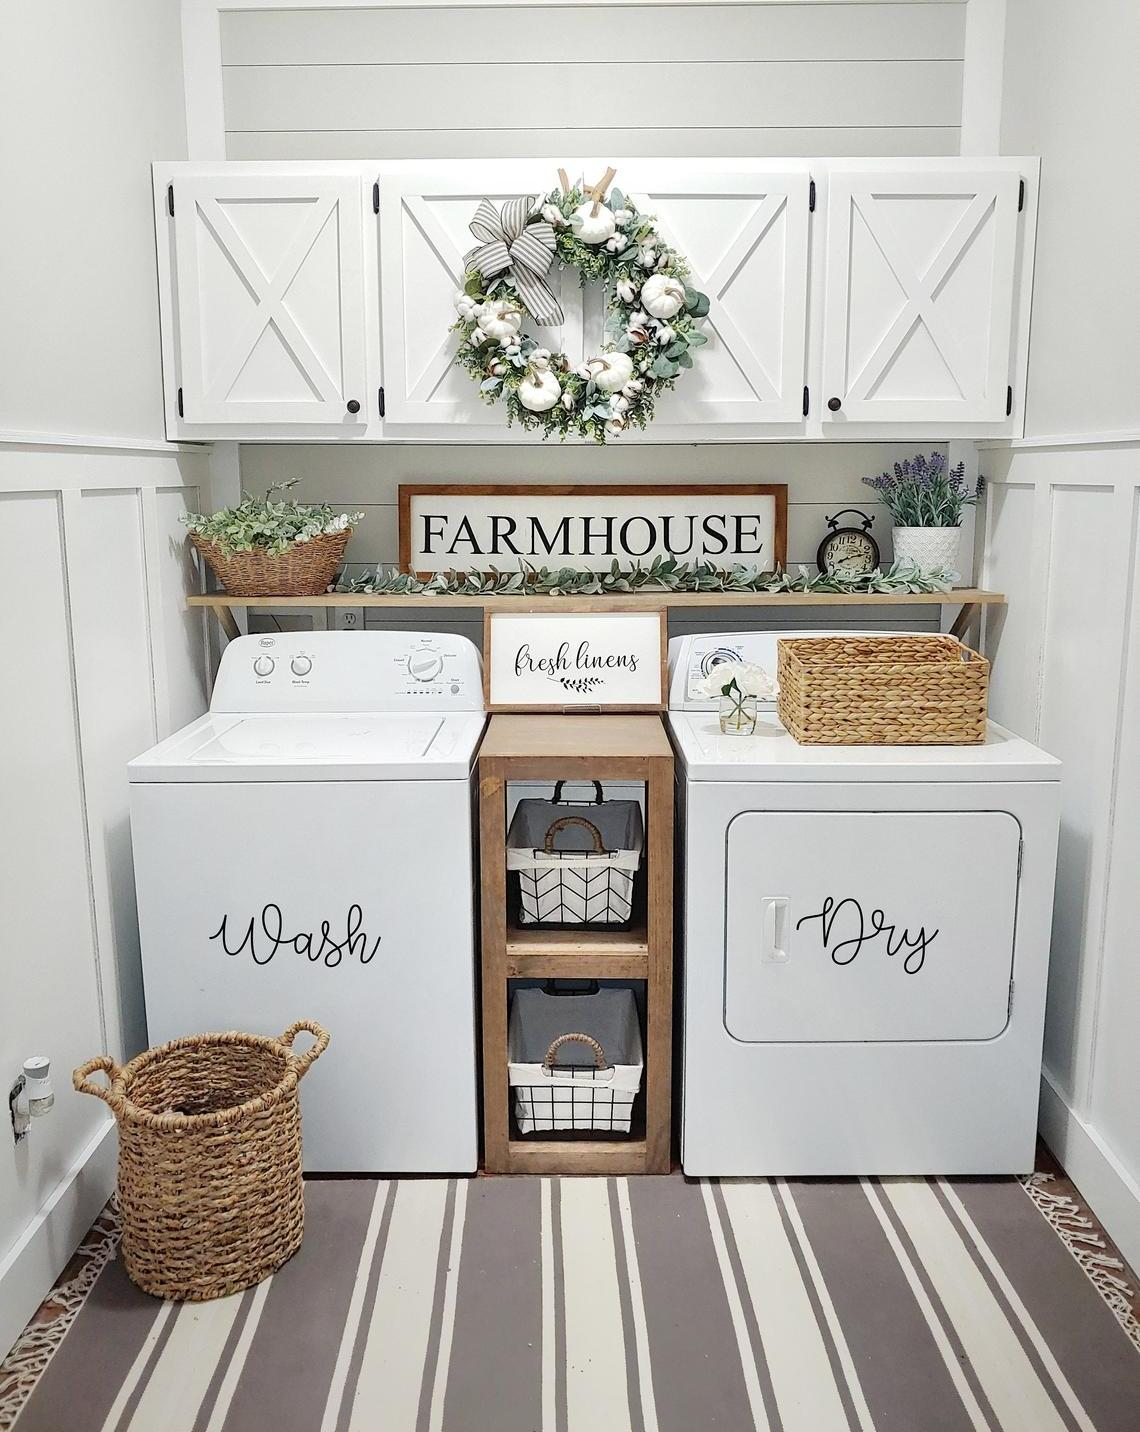 White laundry room with wreath and wicker baskets